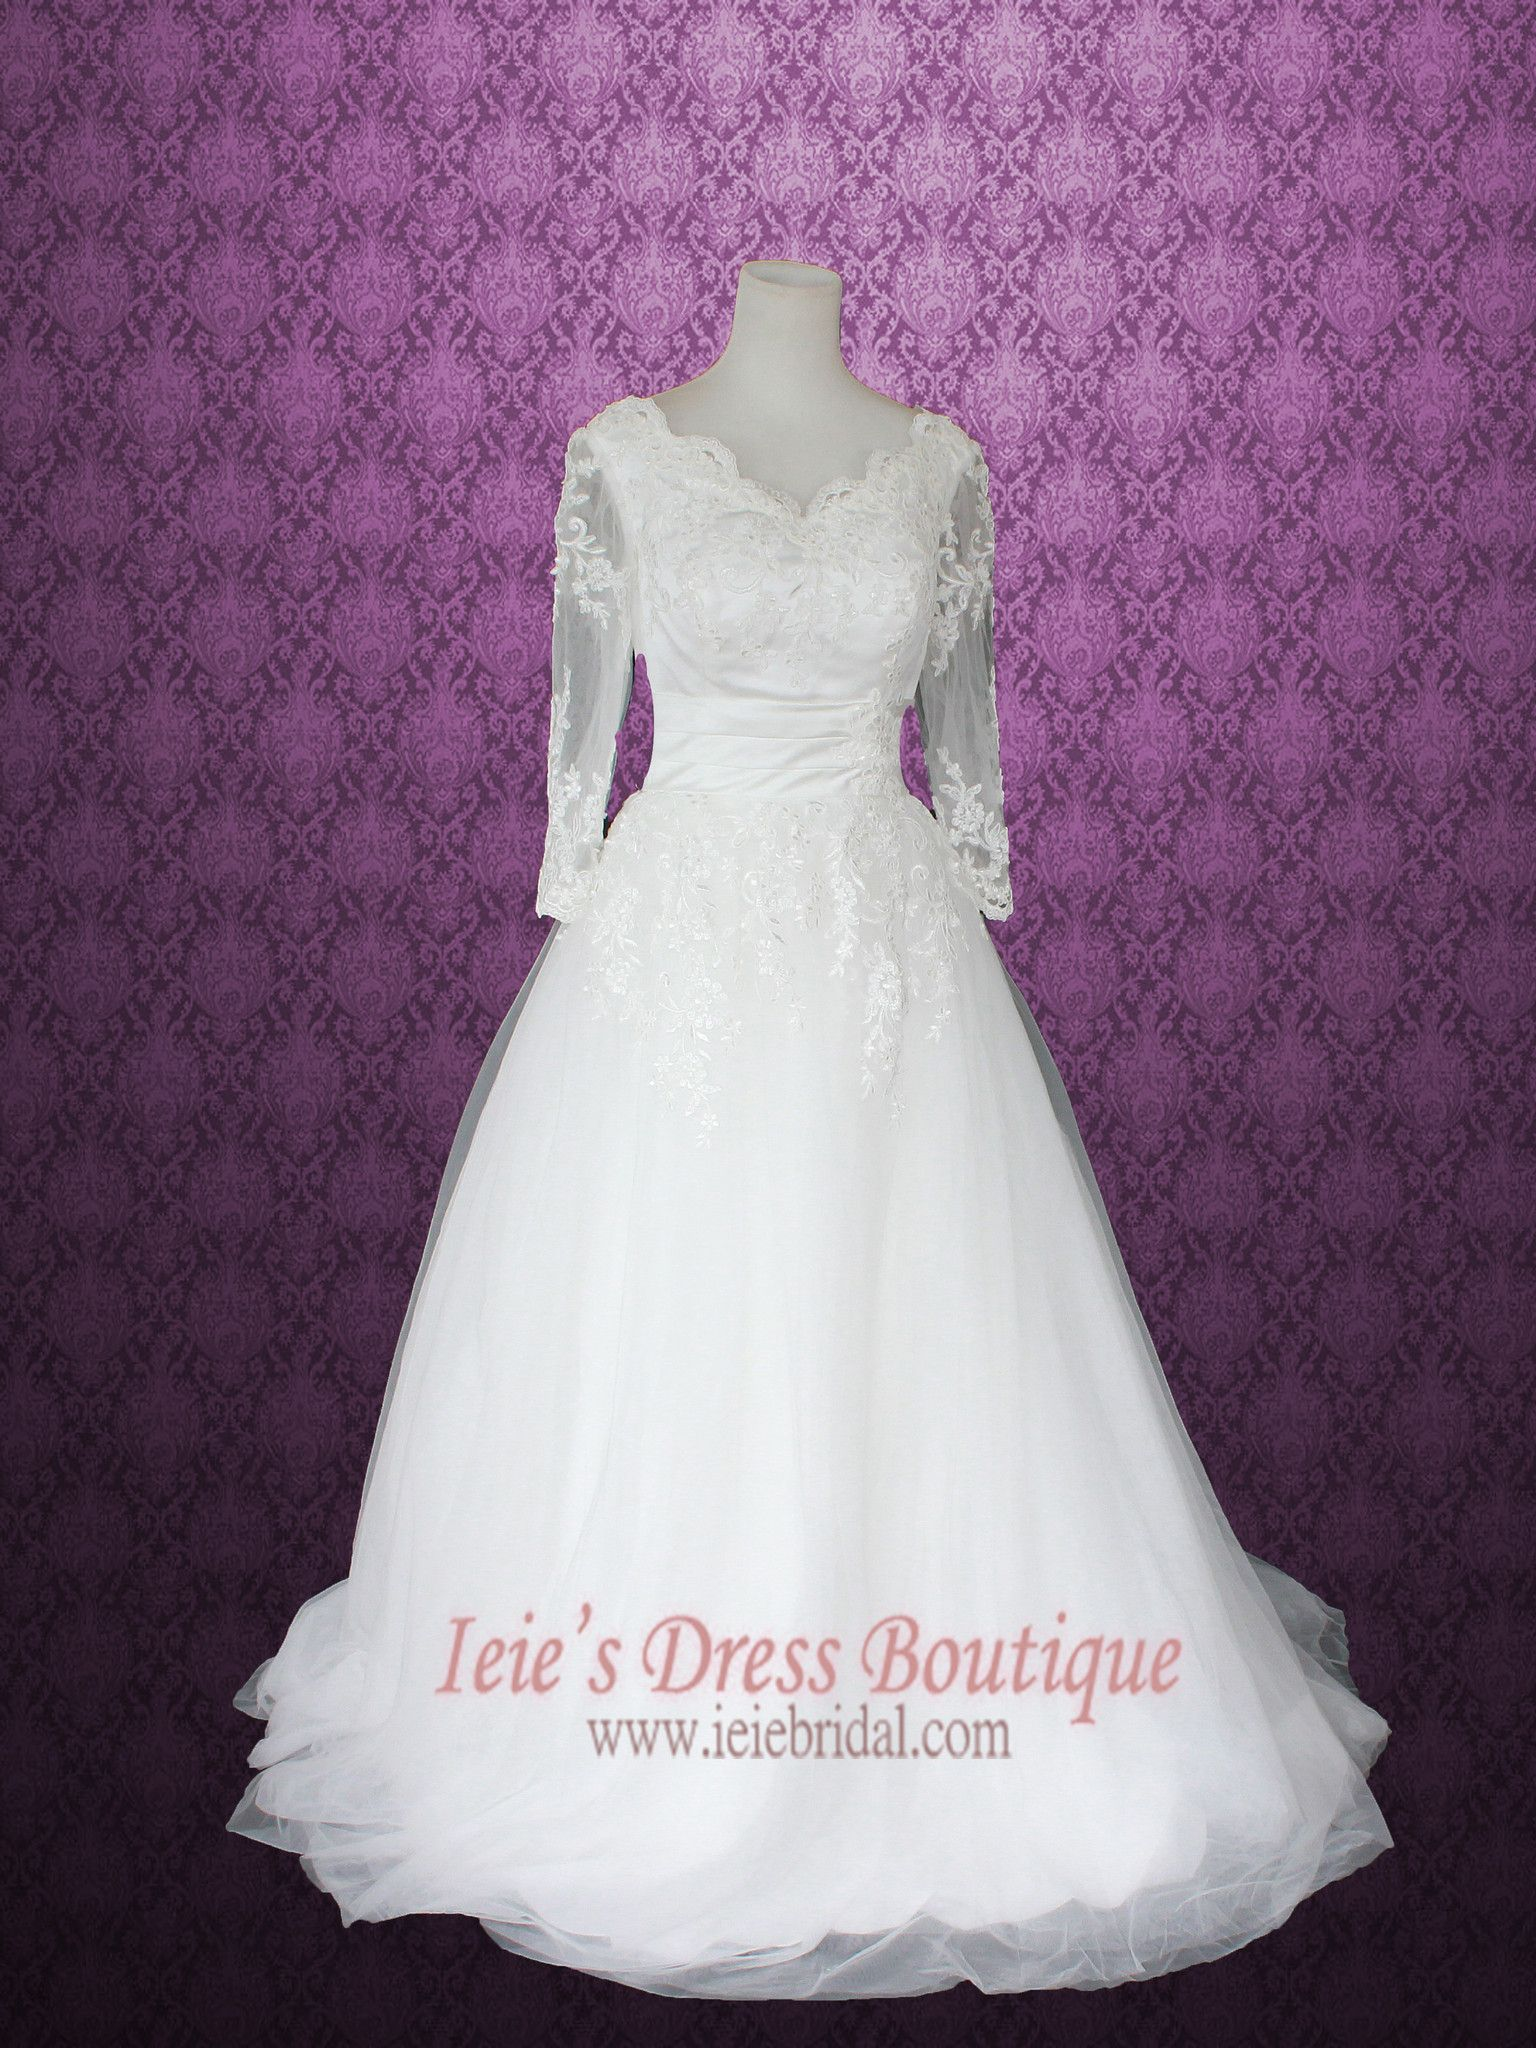 Victorian style princess ball gown floral lace wedding dress with